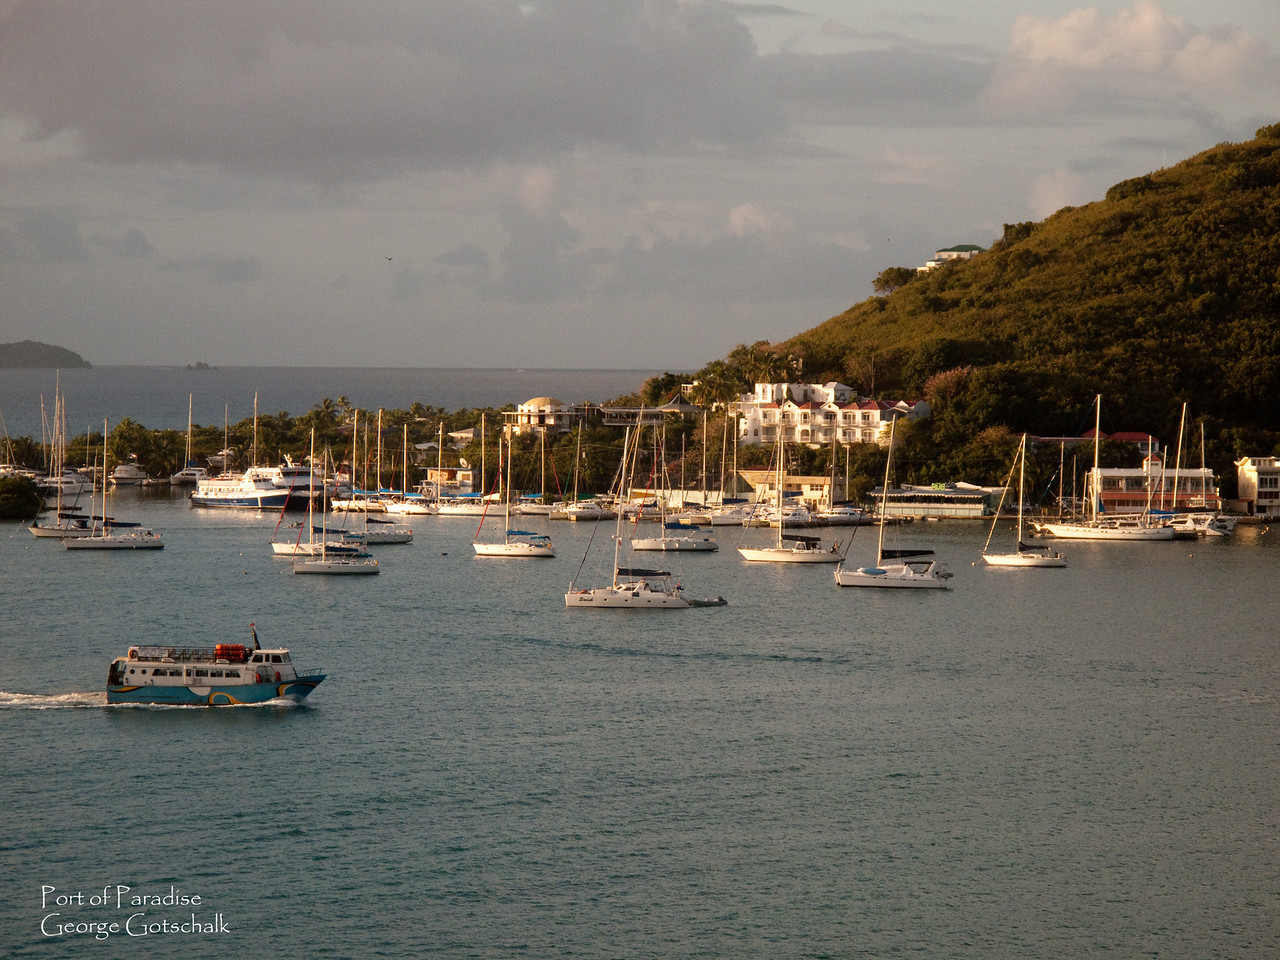 Typical Caribbean port scene